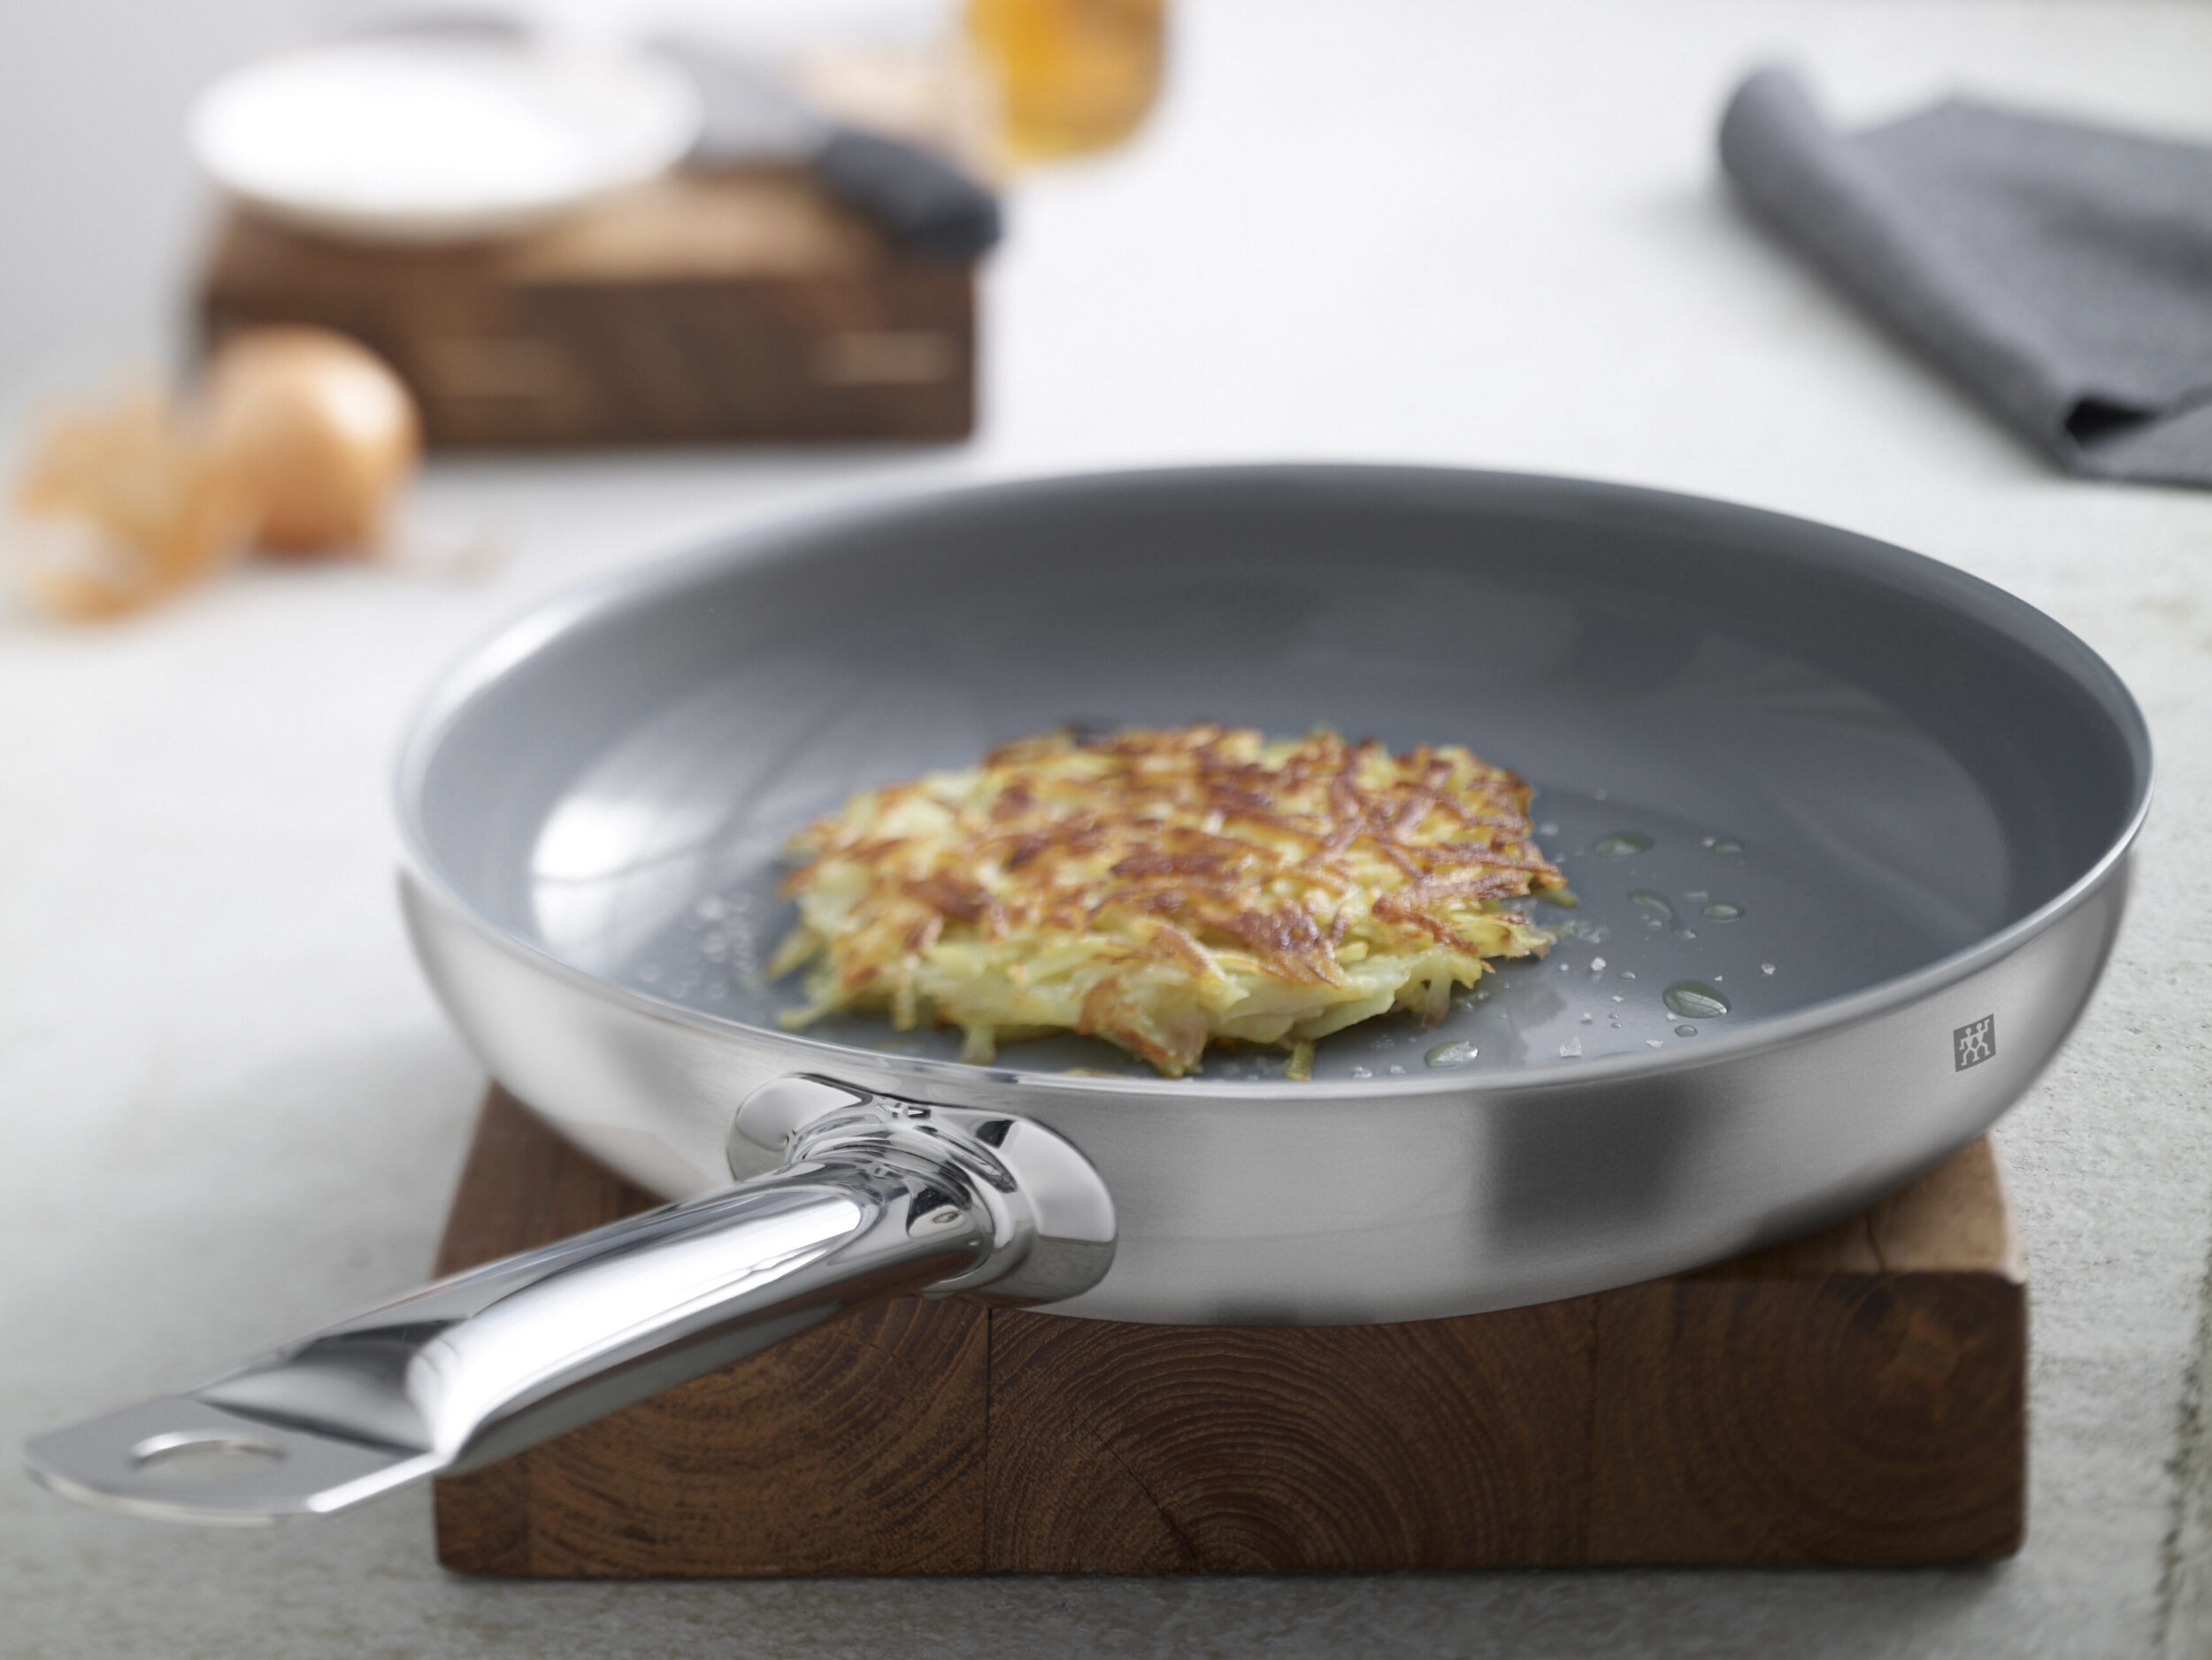 USE AND CARE YOUR COOKWARE - IT'S A PLEASURE